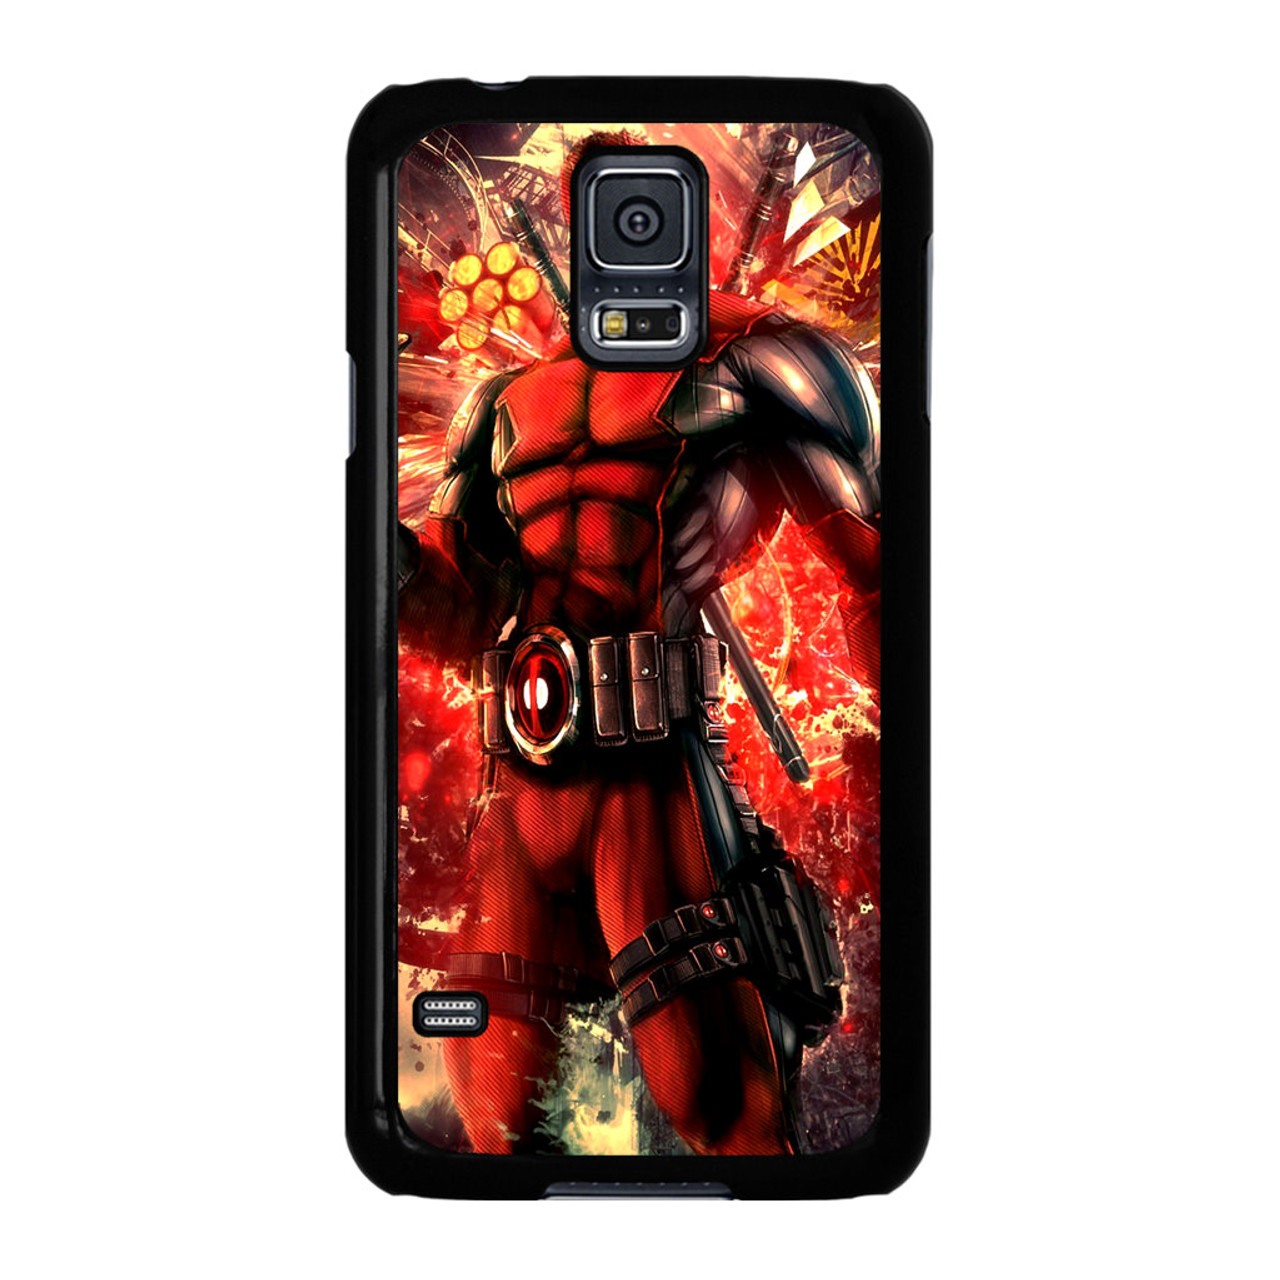 separation shoes f7a8f 92ed3 Marvel Heroes Deadpool Samsung Galaxy S5 Case - CASESHUNTER